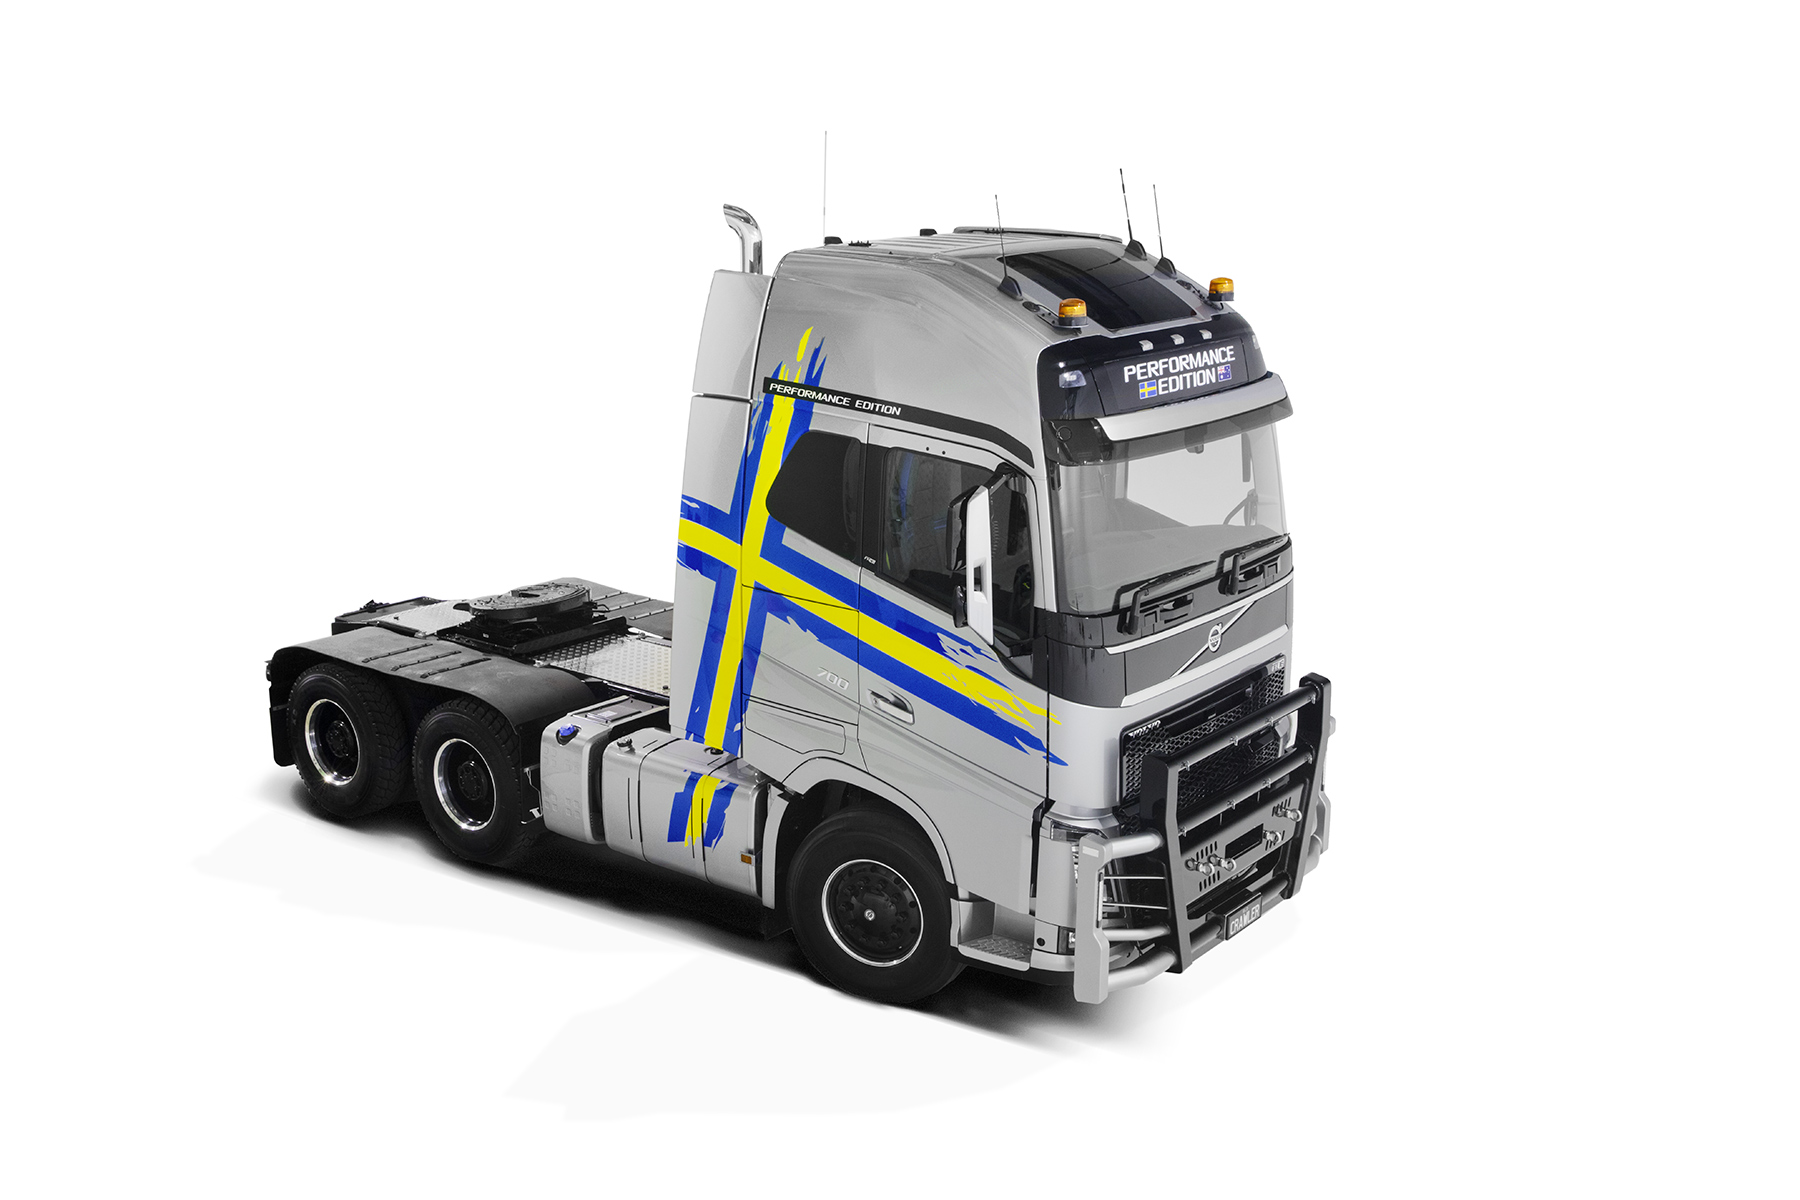 Volvo FH Performance truck photographed in studio